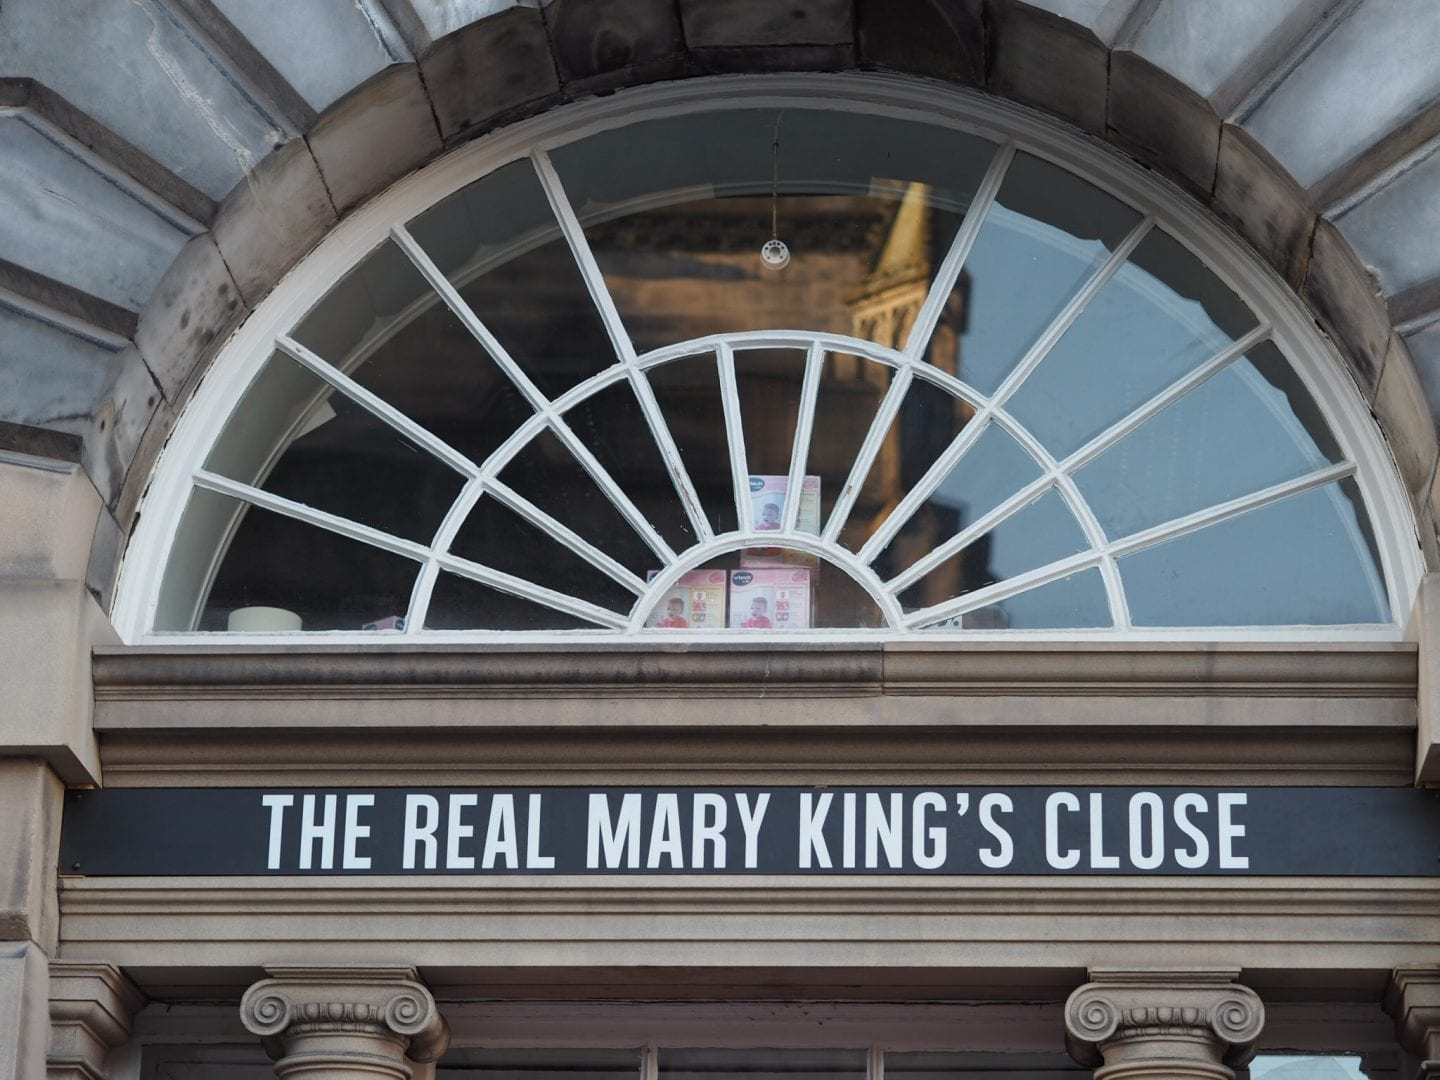 The Real Mary King's Close Royal Mile Edinburgh